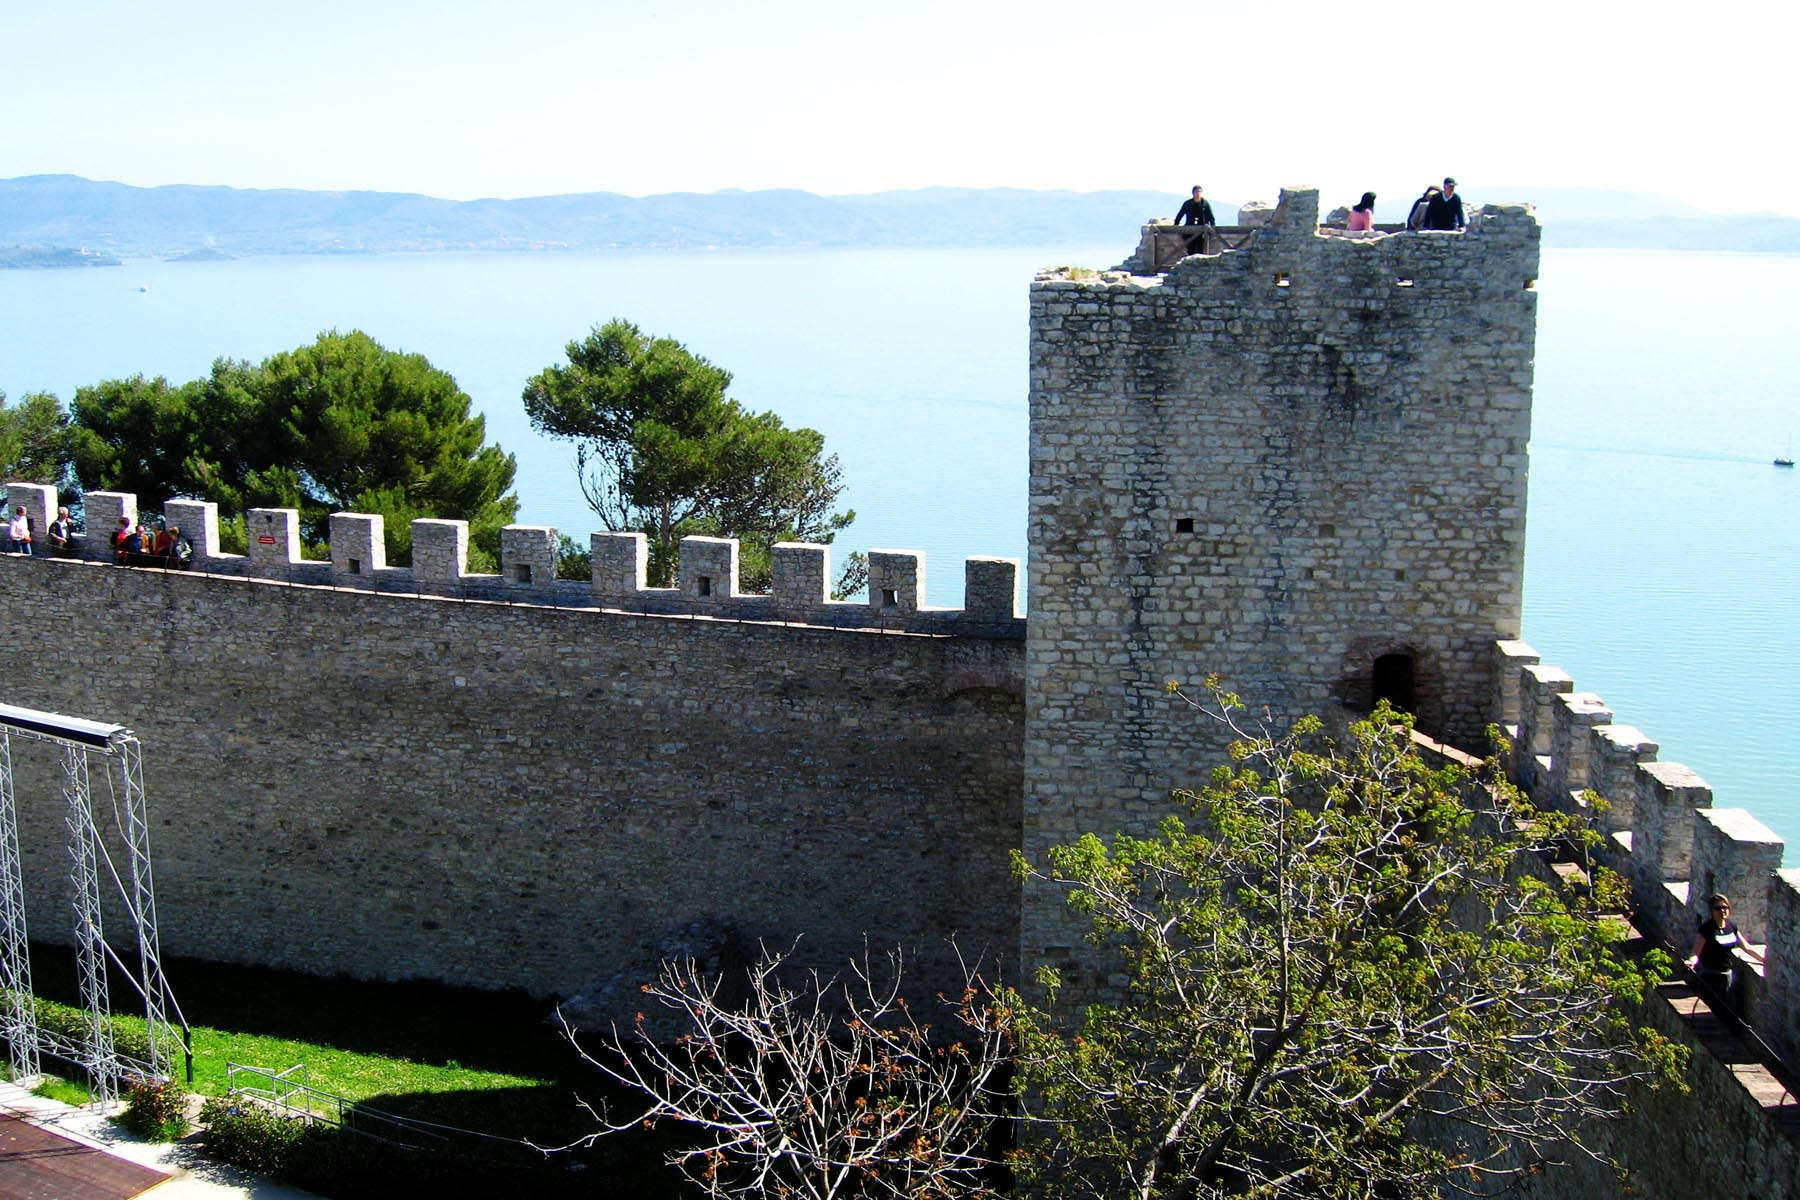 A view of Lago Trasimeno from the palazzo fortress. Photos by David Lansing.